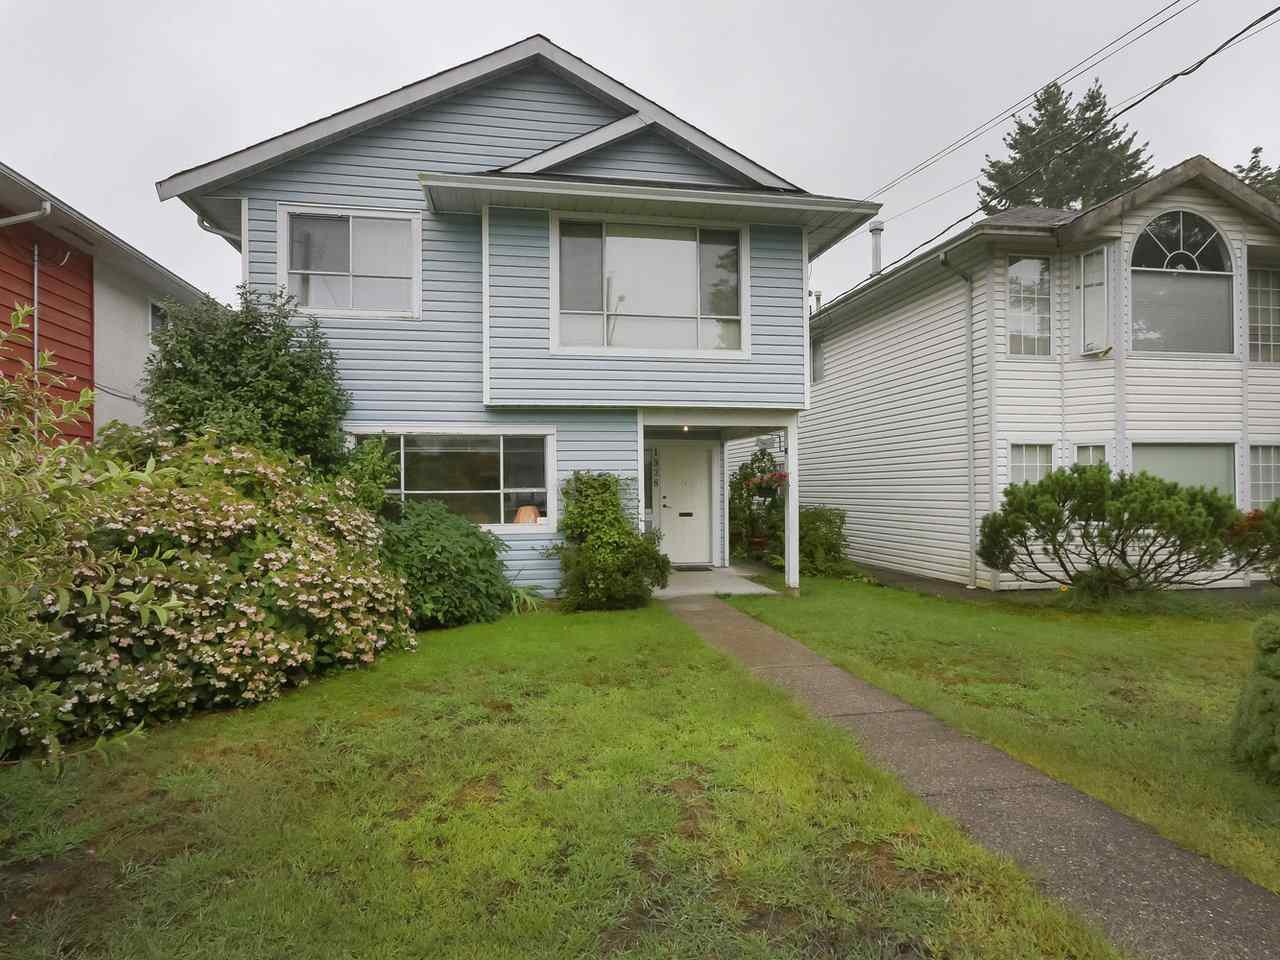 Main Photo: 1938 GRANT Avenue in Port Coquitlam: Glenwood PQ House for sale : MLS®# R2399076